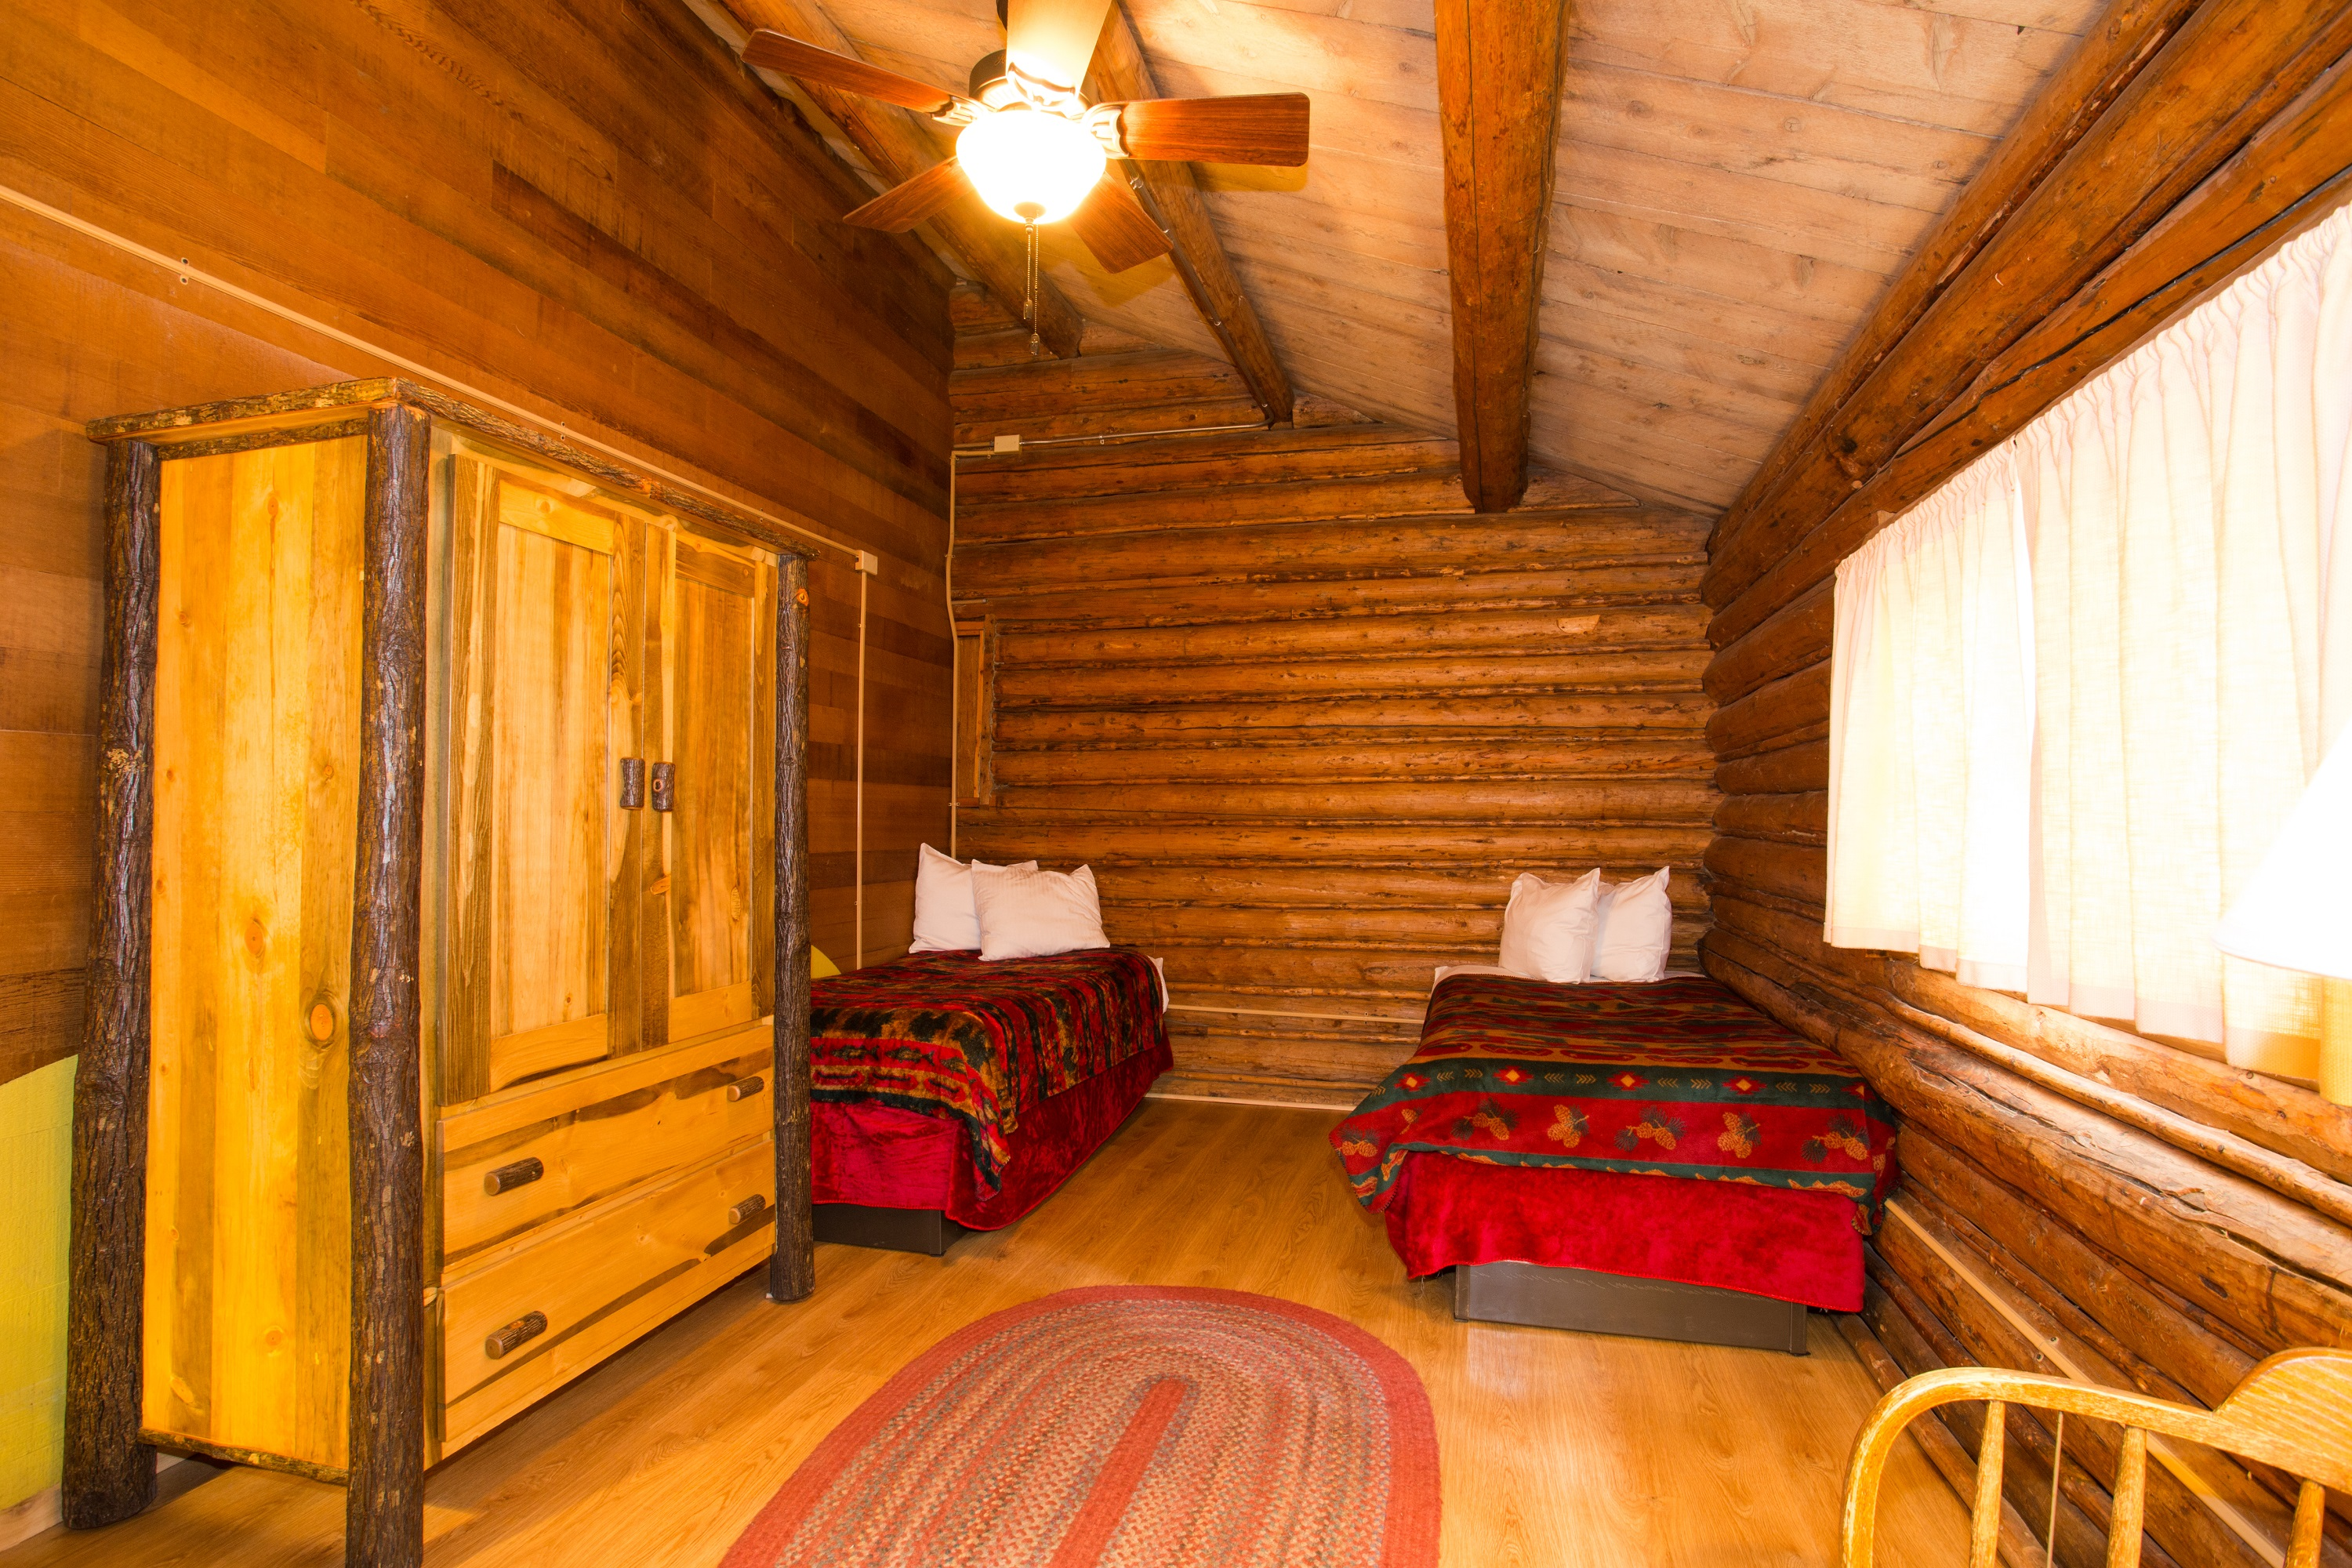 lodging ski with stunning vacation jackso and jackson creekside village resort jobs rustic inn vrbo cabins cabin hole homey rentals vertical decoration video